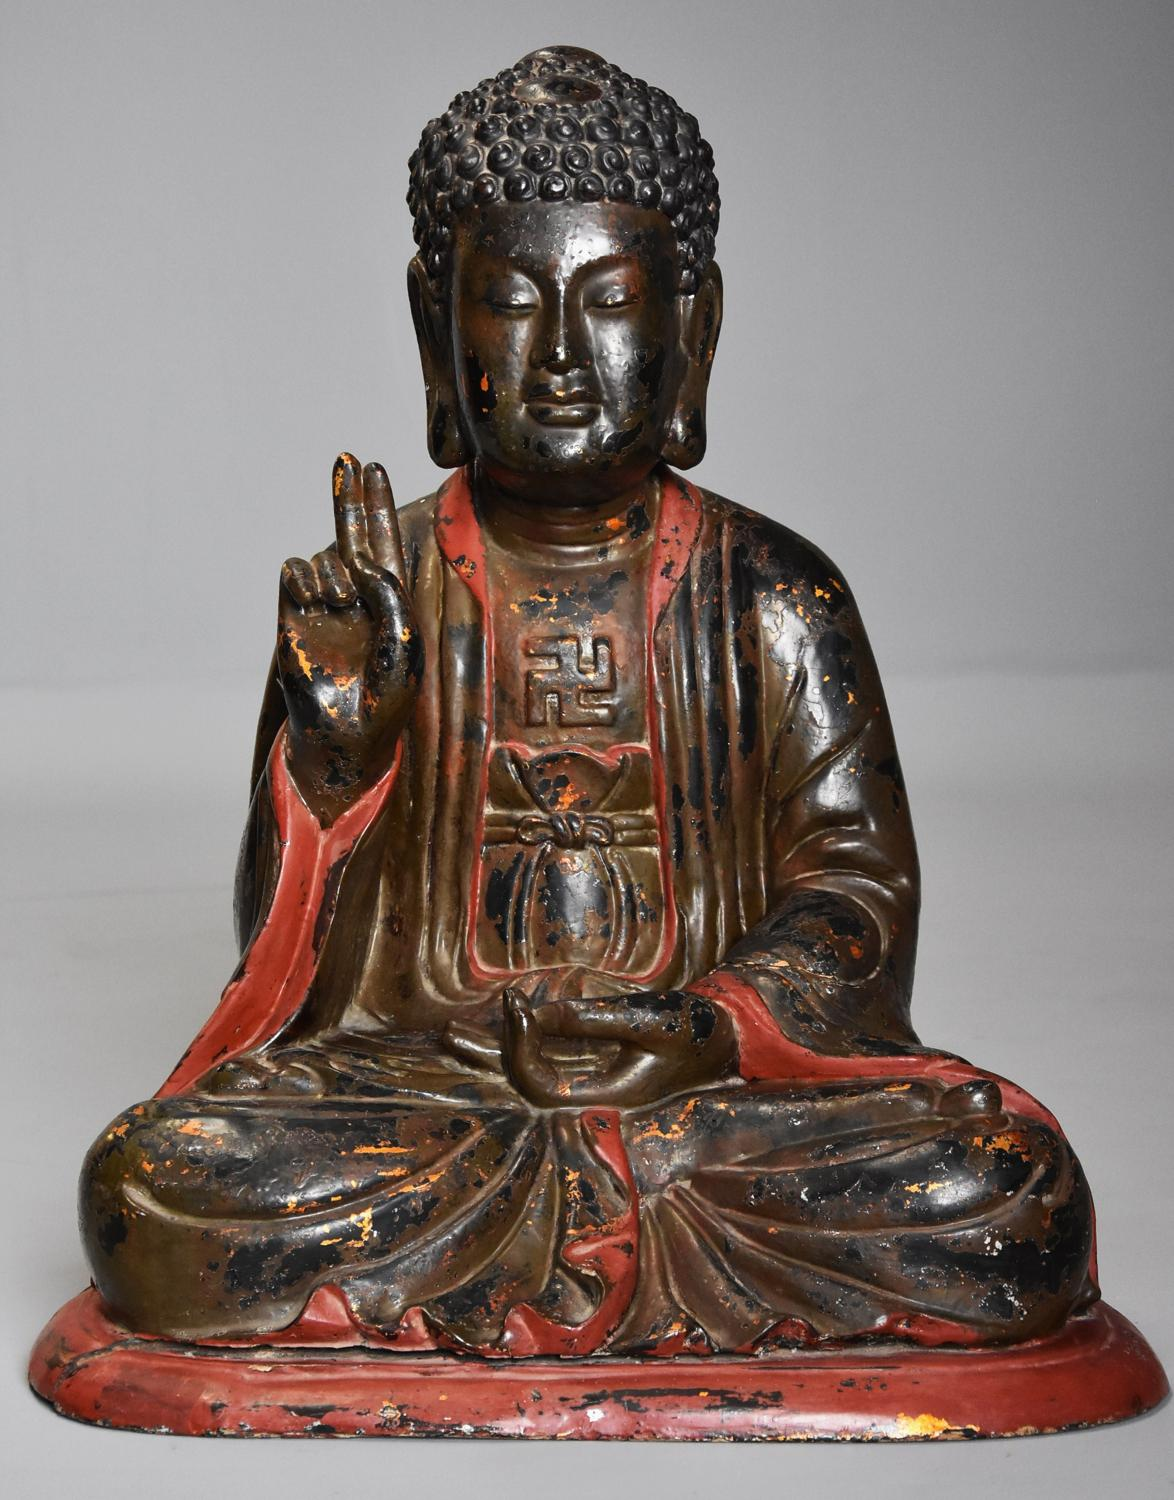 Highly decorative 19thc Vietnamese carved wooden polychrome Buddha